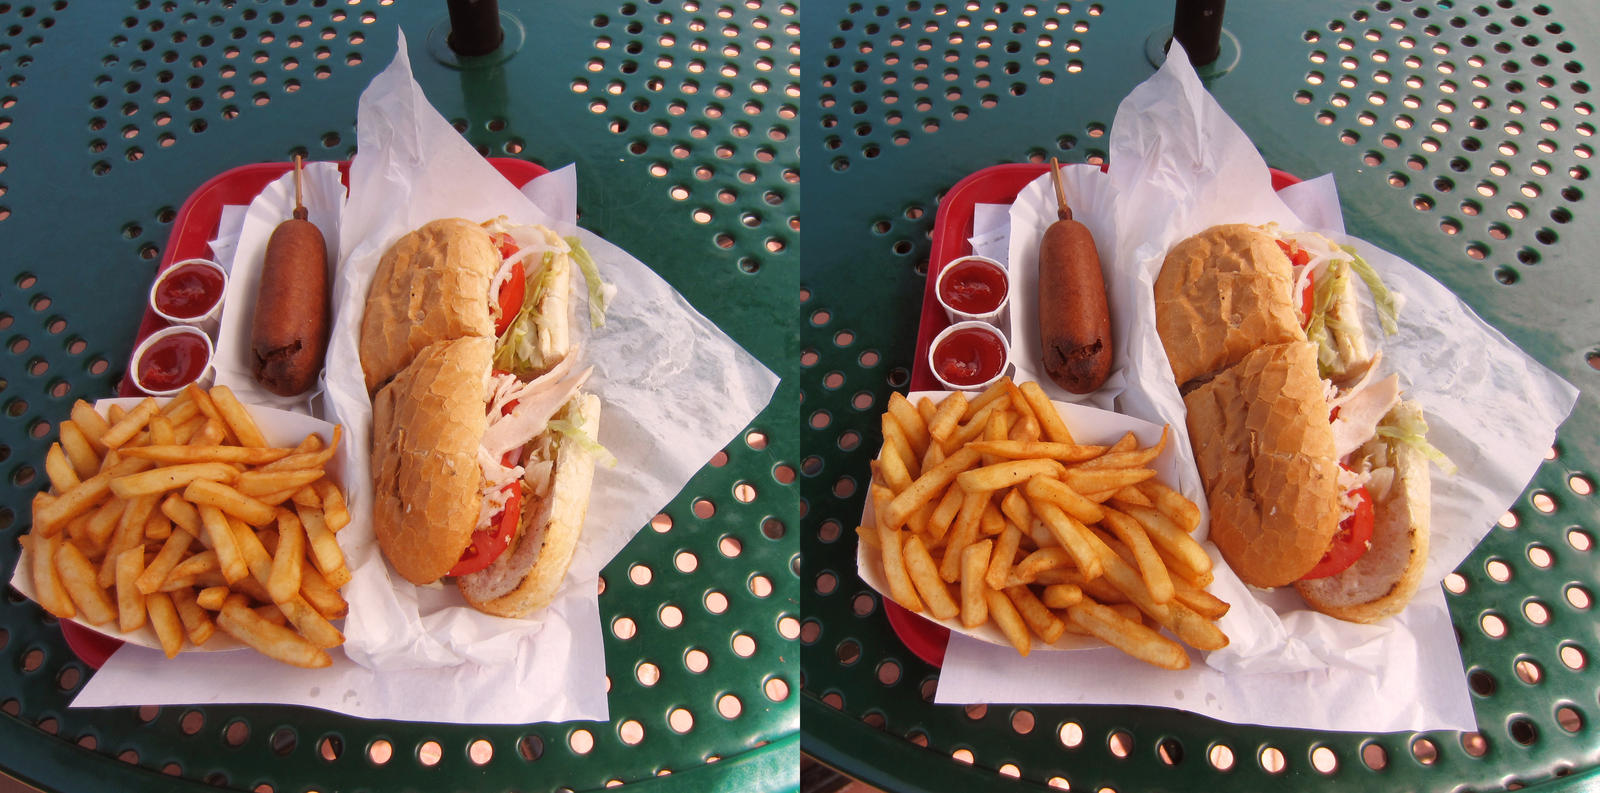 Stereograph - Sub Fries and Corndog by alanbecker